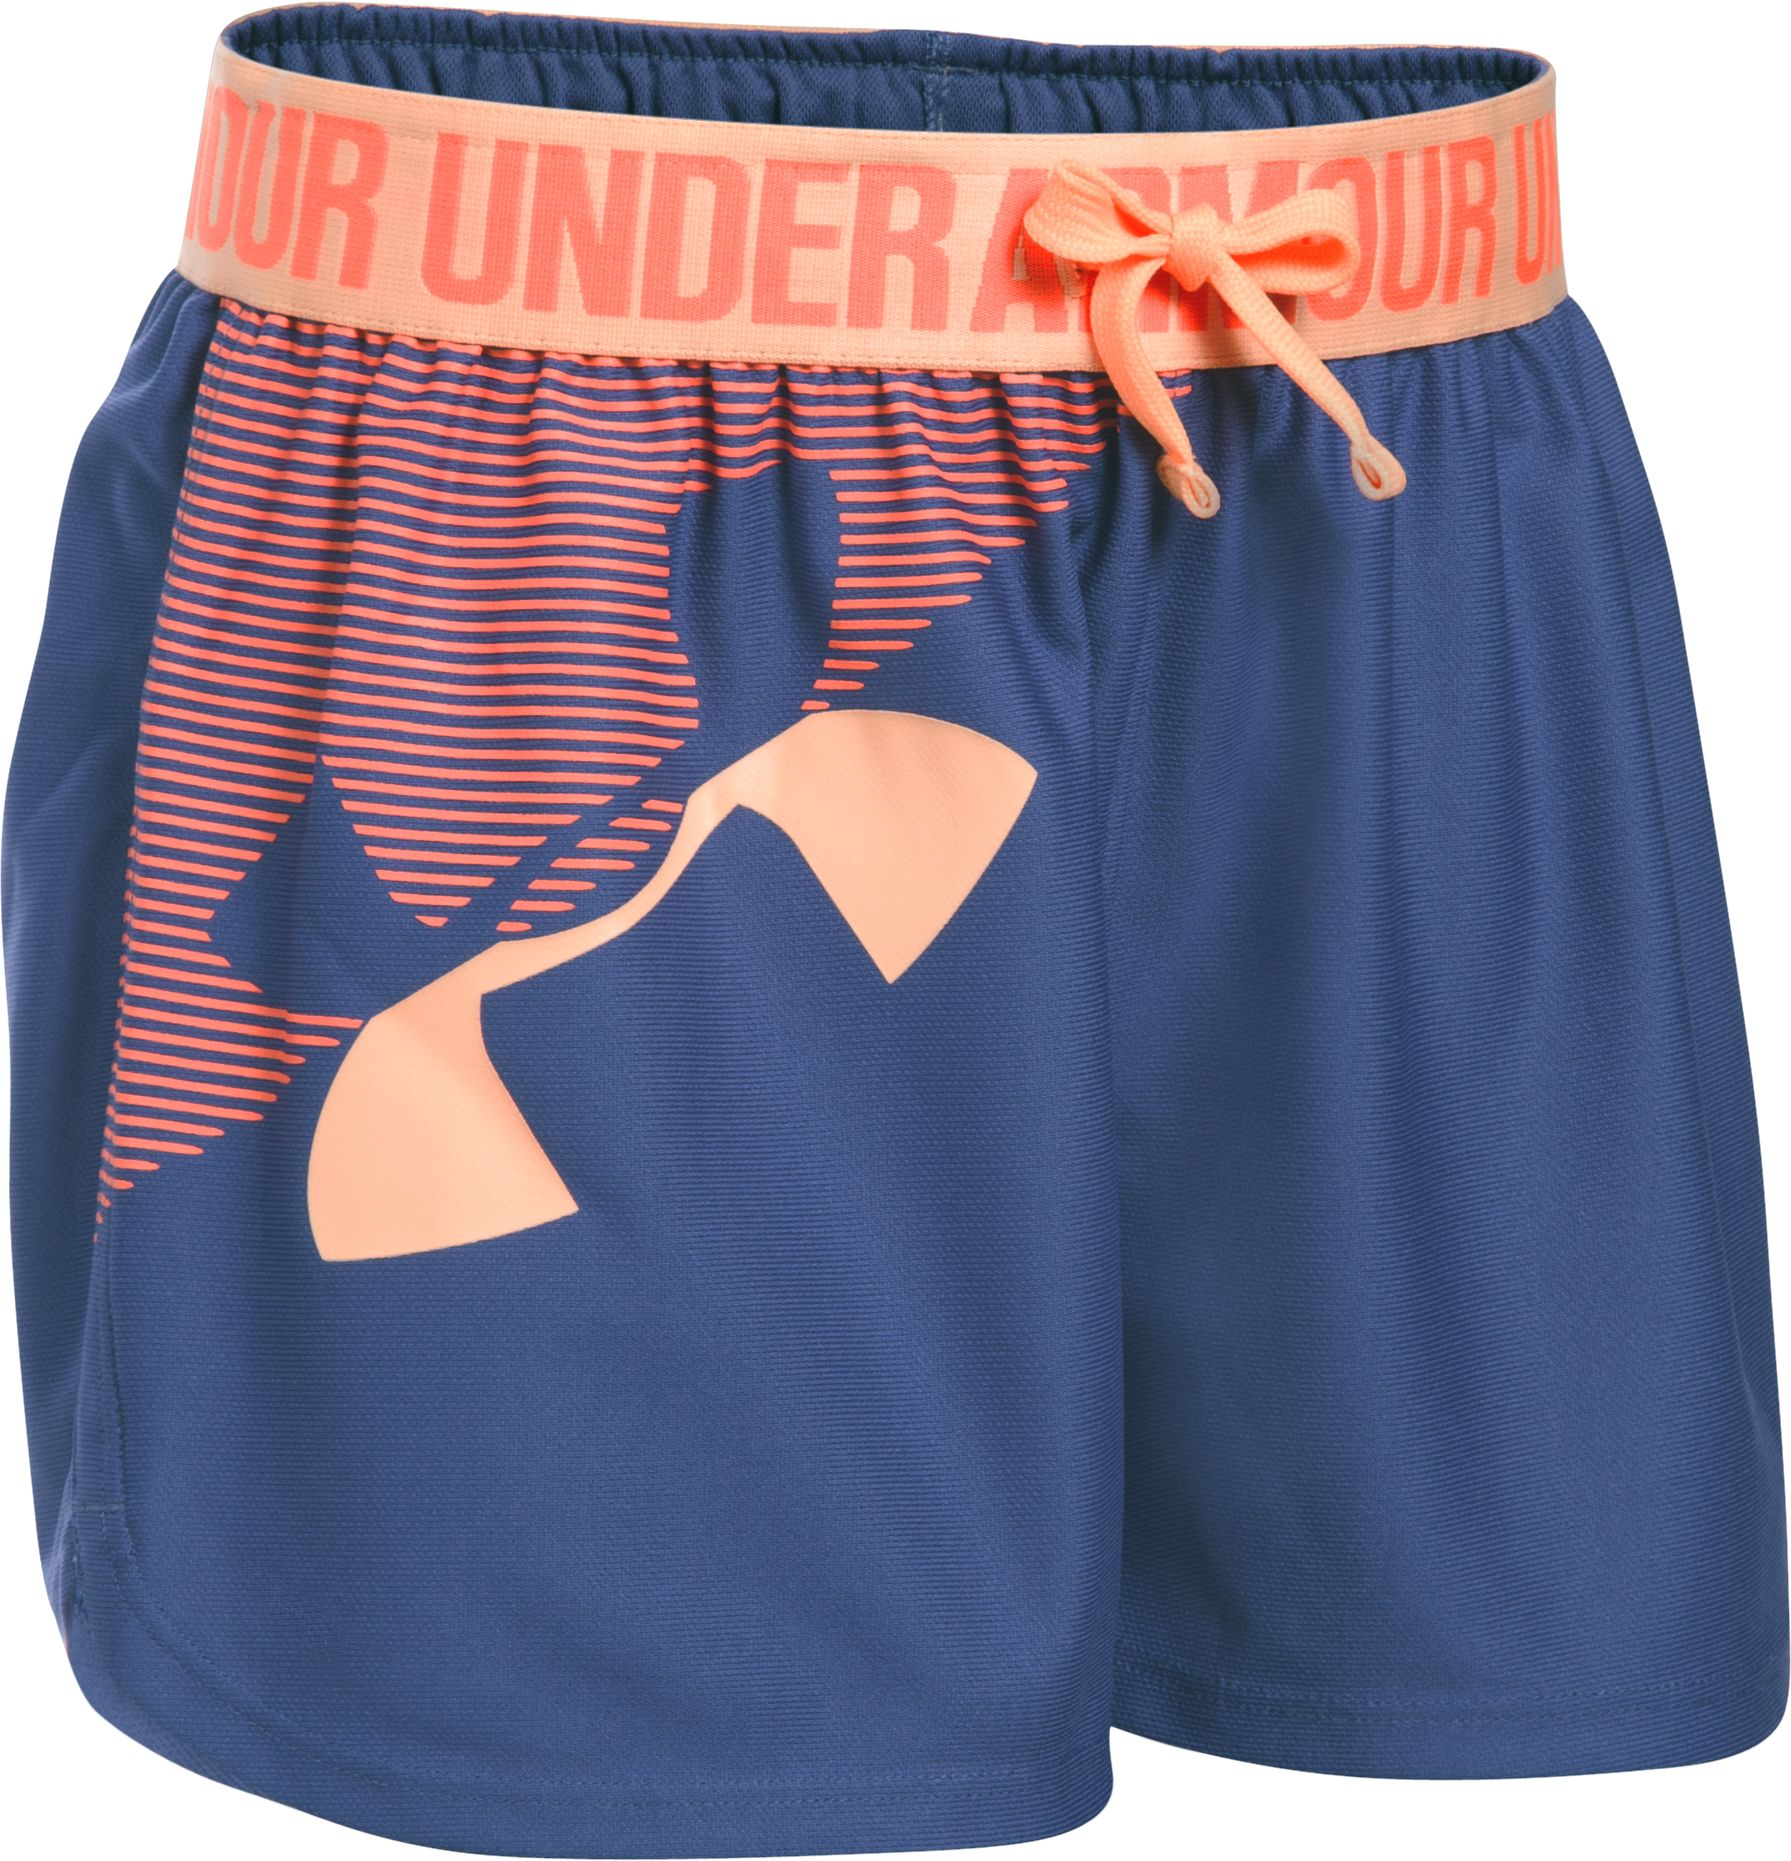 Under Armour Girls Graphic Play Up Shorts DICKS Sporting Goods